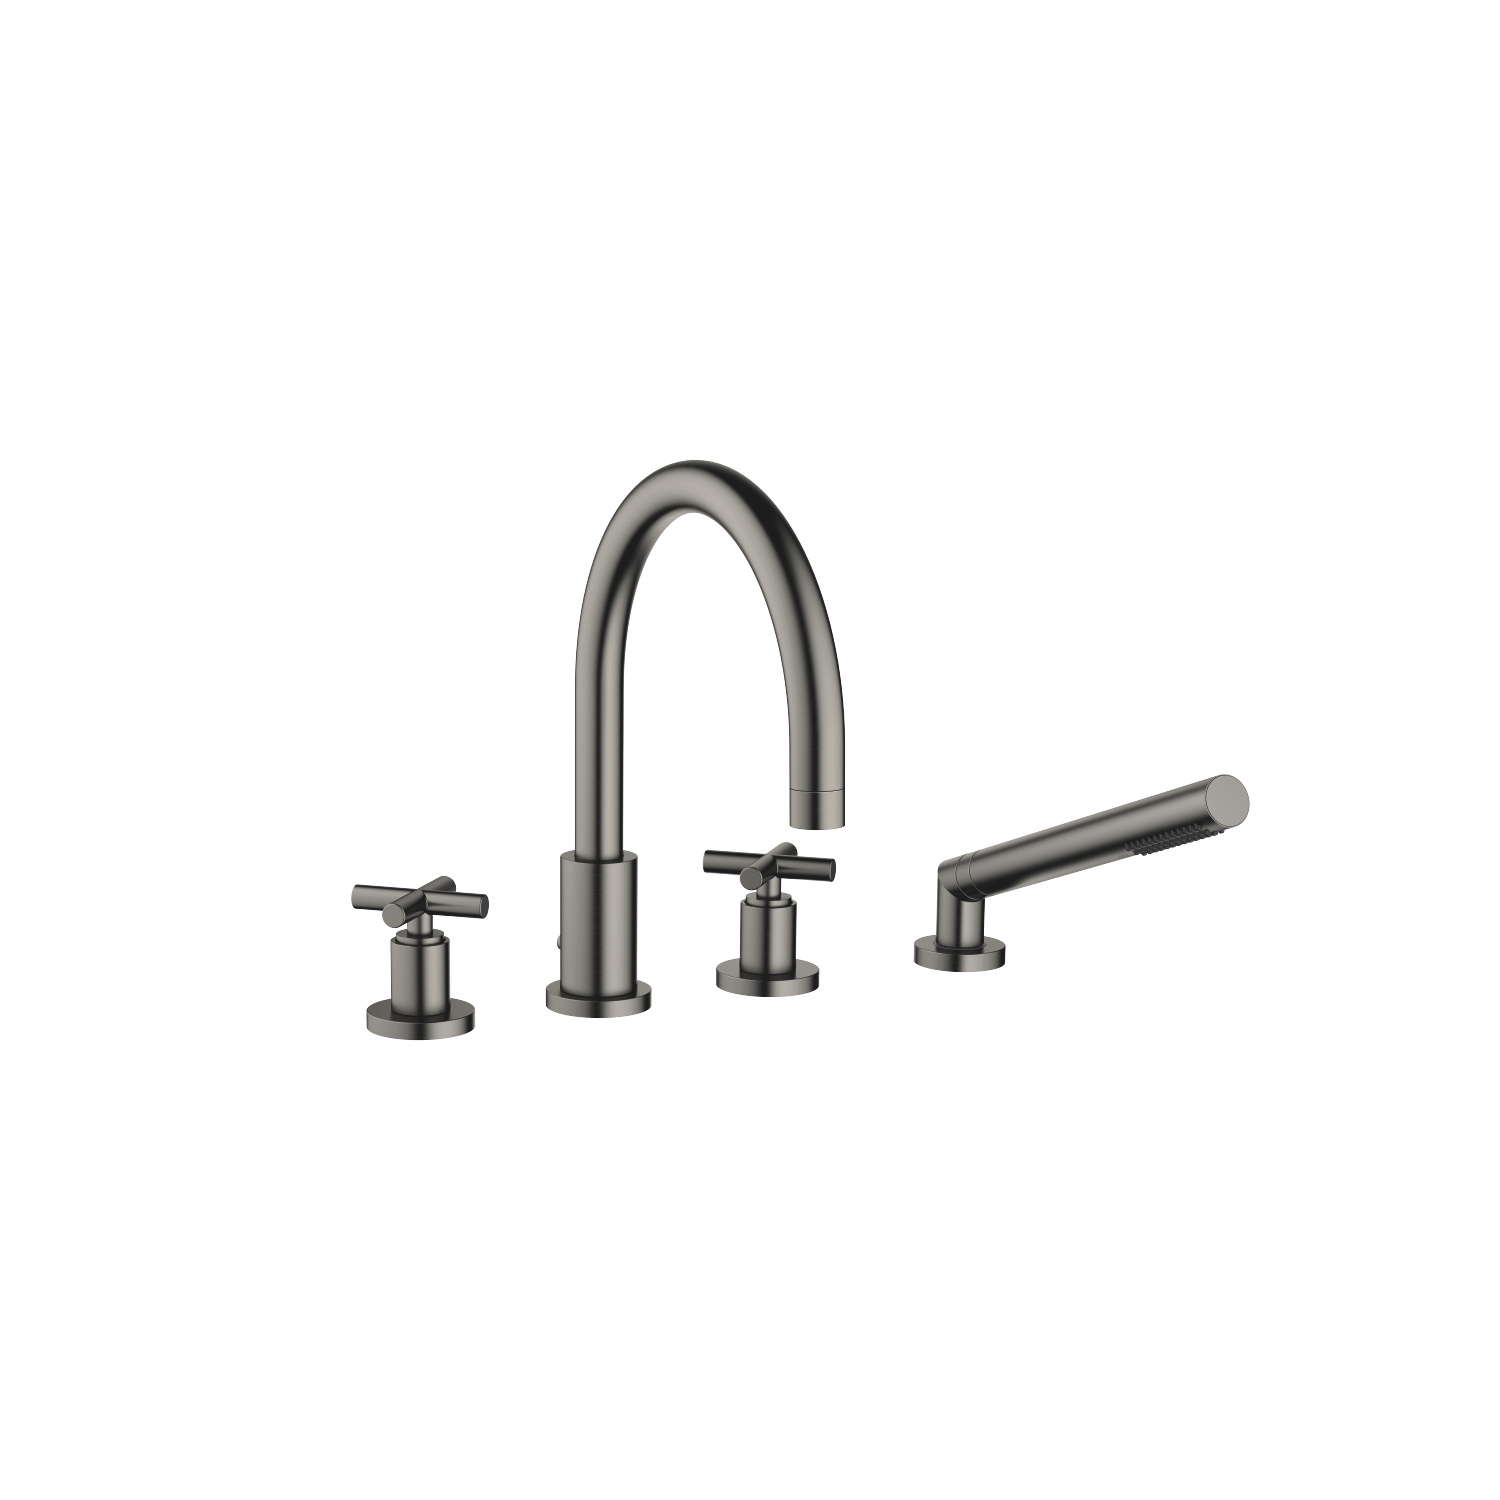 Bath shower set for bath rim or tile edge installation - Dark Platinum matt